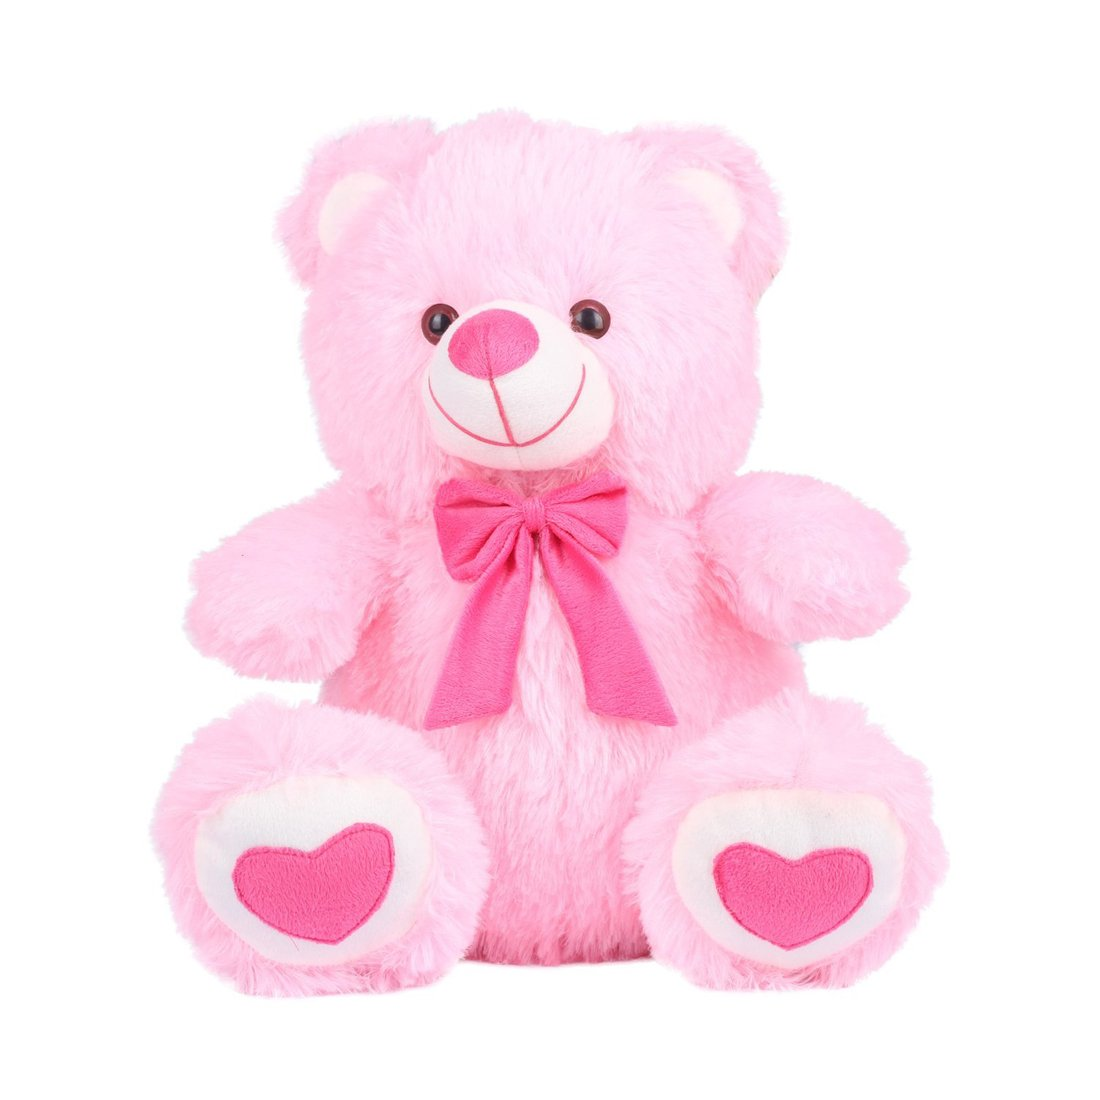 buy ultra angel teddy pink 38cm online at low prices in india